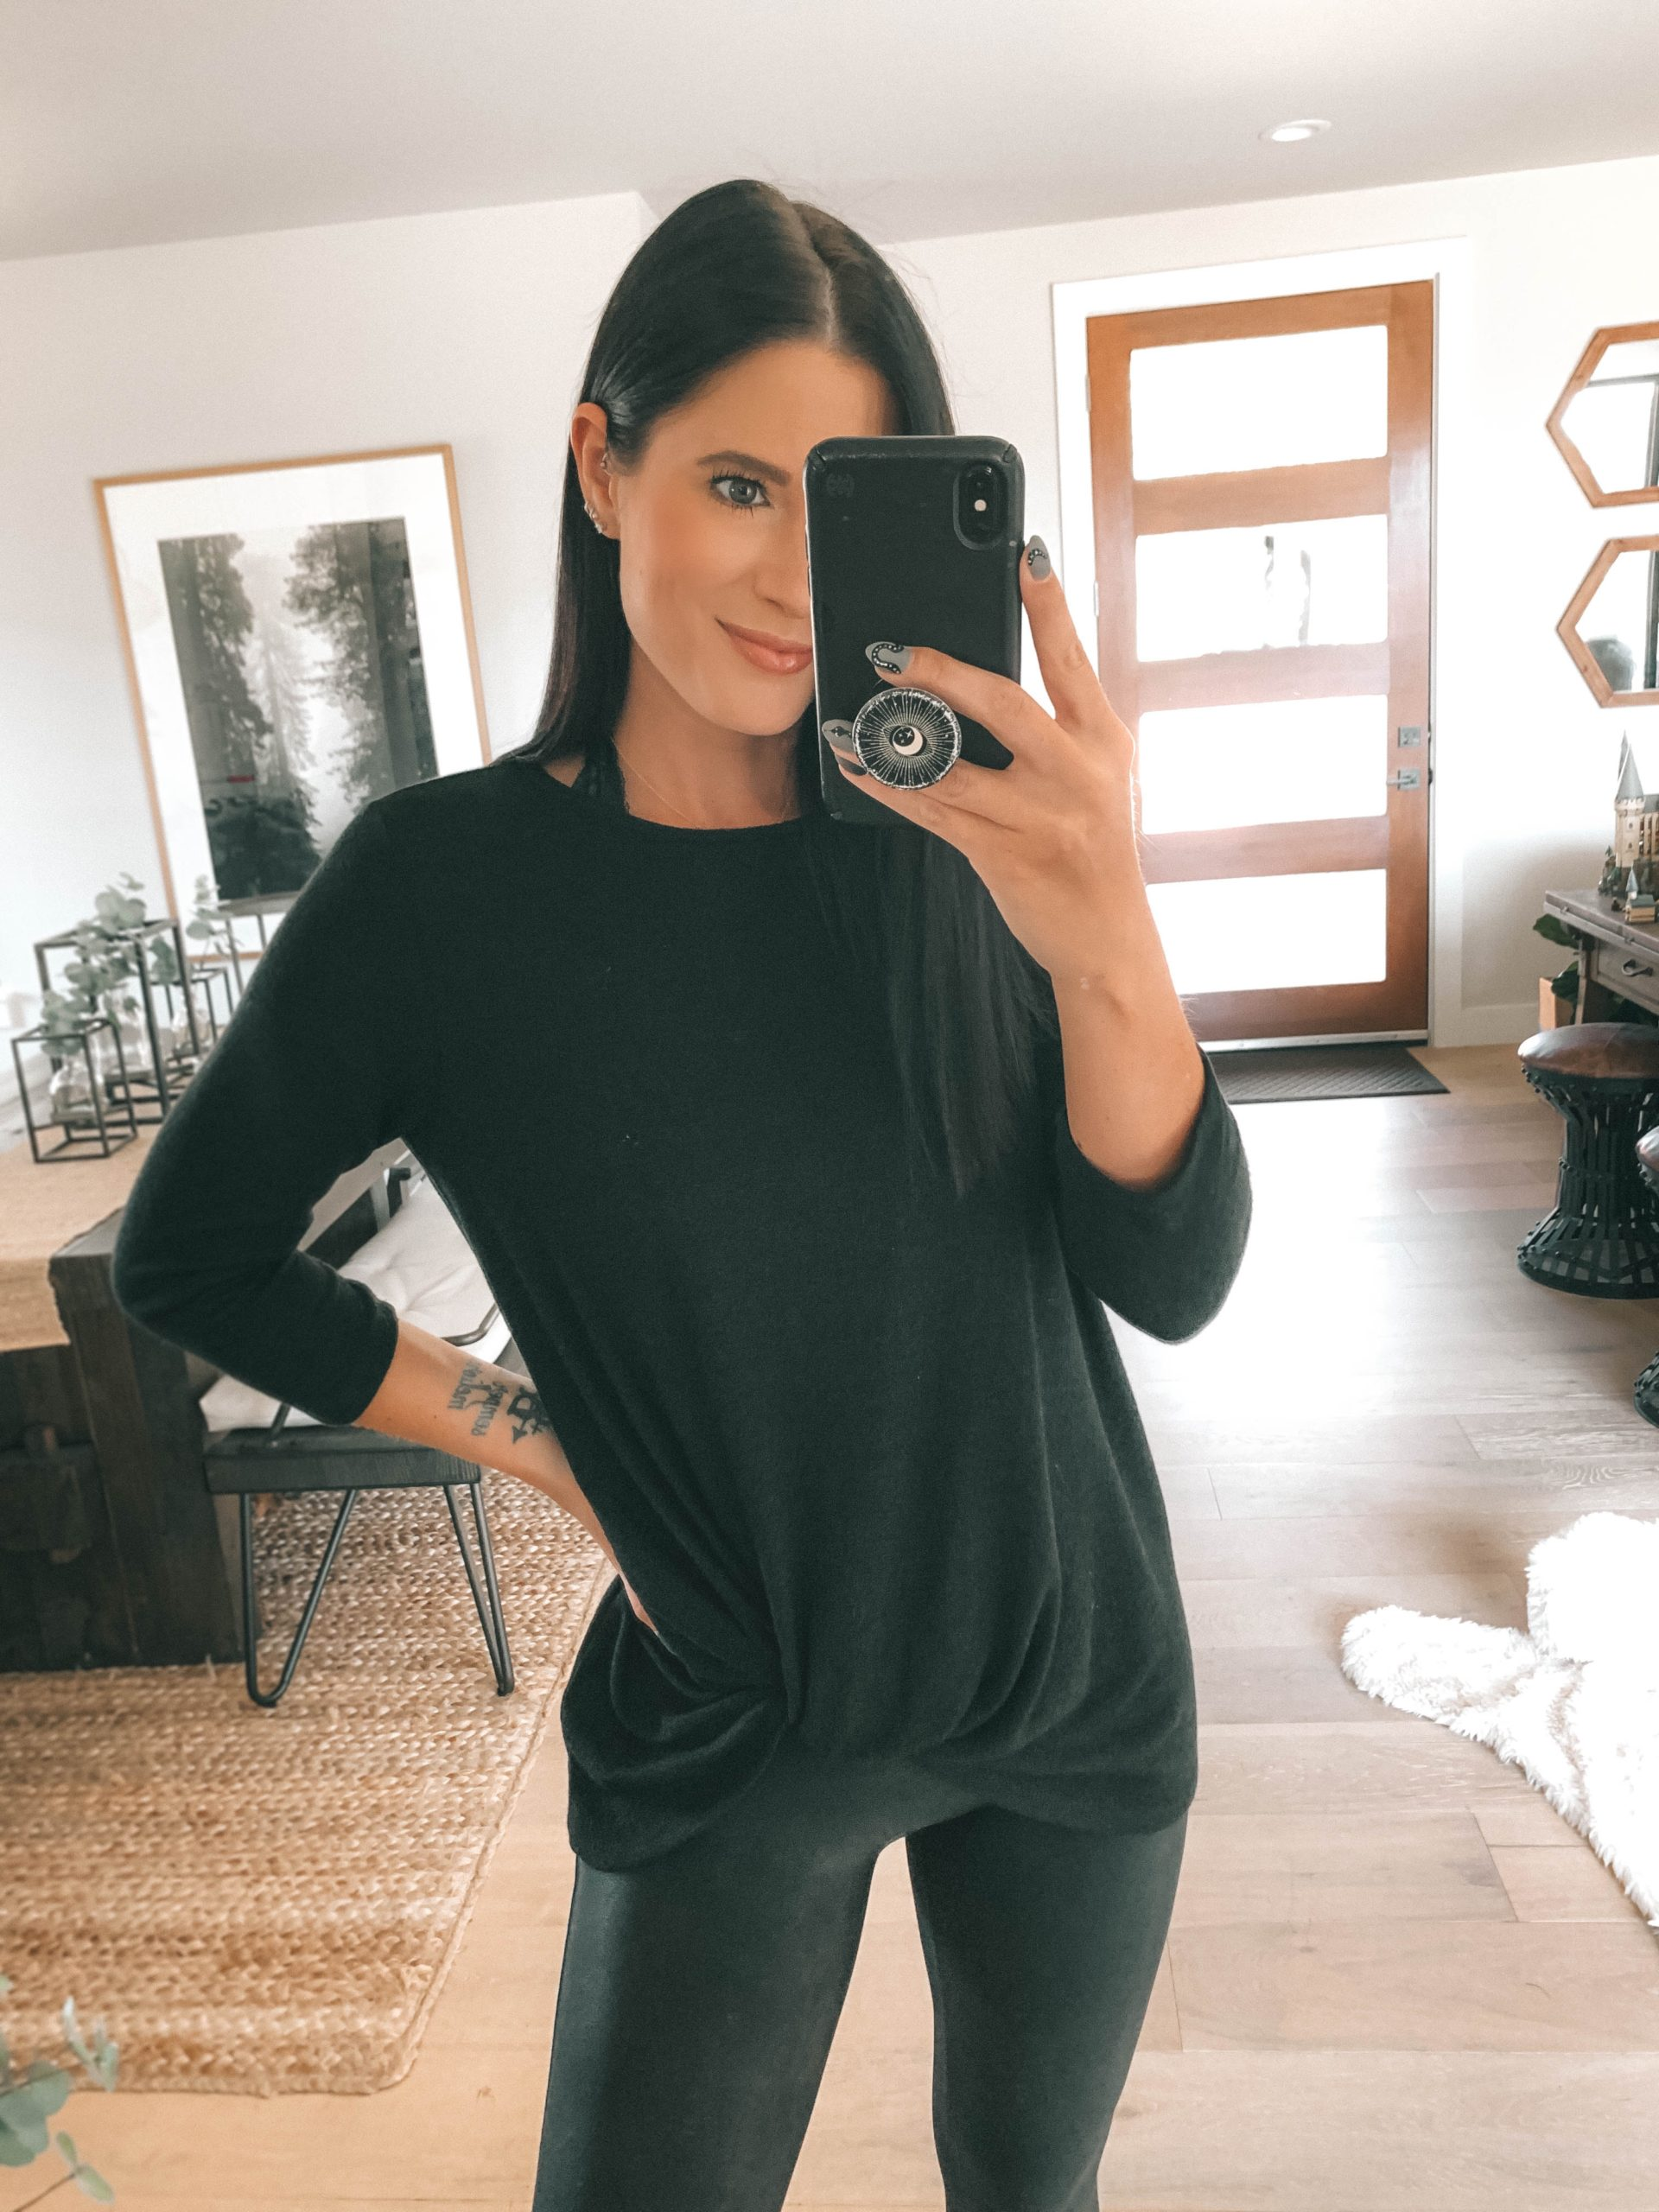 Nordstrom Anniversary Sale by popular Austin fashion blog, Dressed to Kill: image of a woman wearing a Nordstrom Cozy Twist Front Pullover GIBSON and Nordstrom Faux Leather Leggings SPANX.